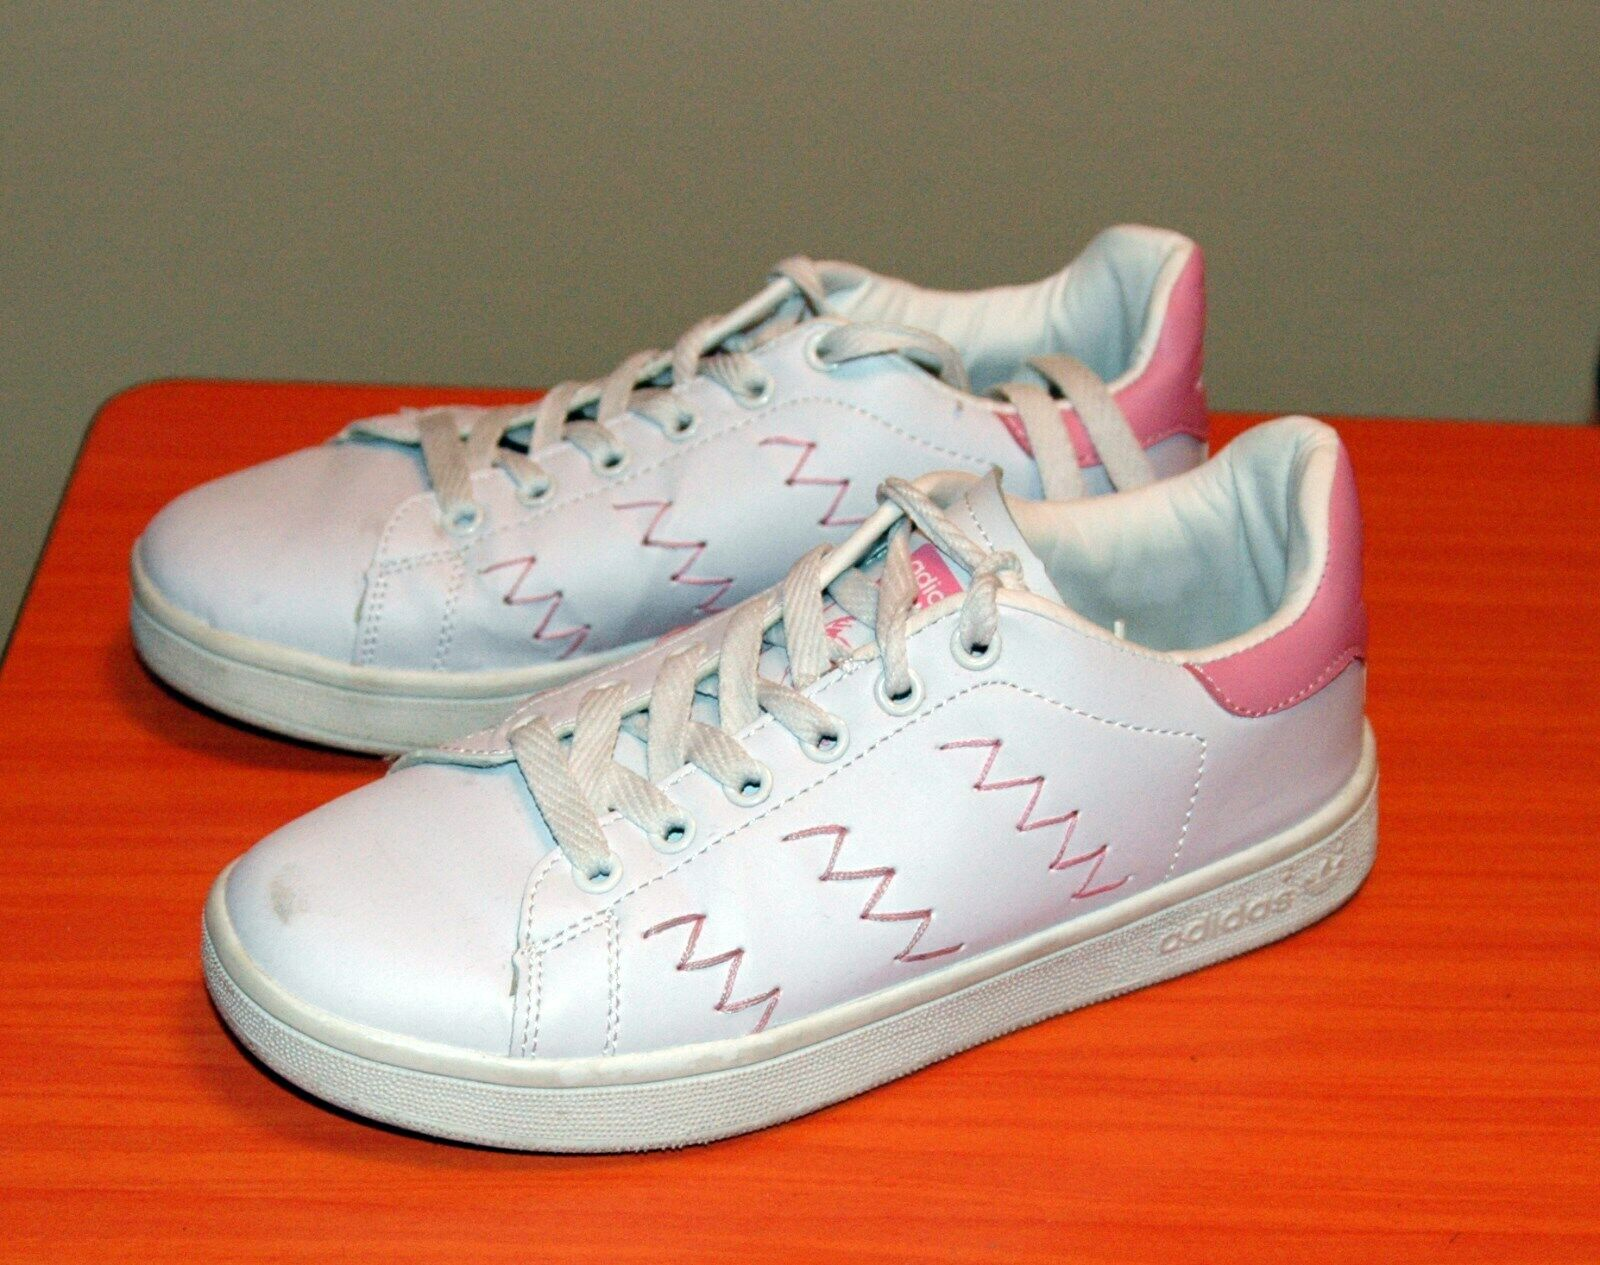 Adidas Stan Smith Women's sneakers pink us 5.5 eu 36 jp 23